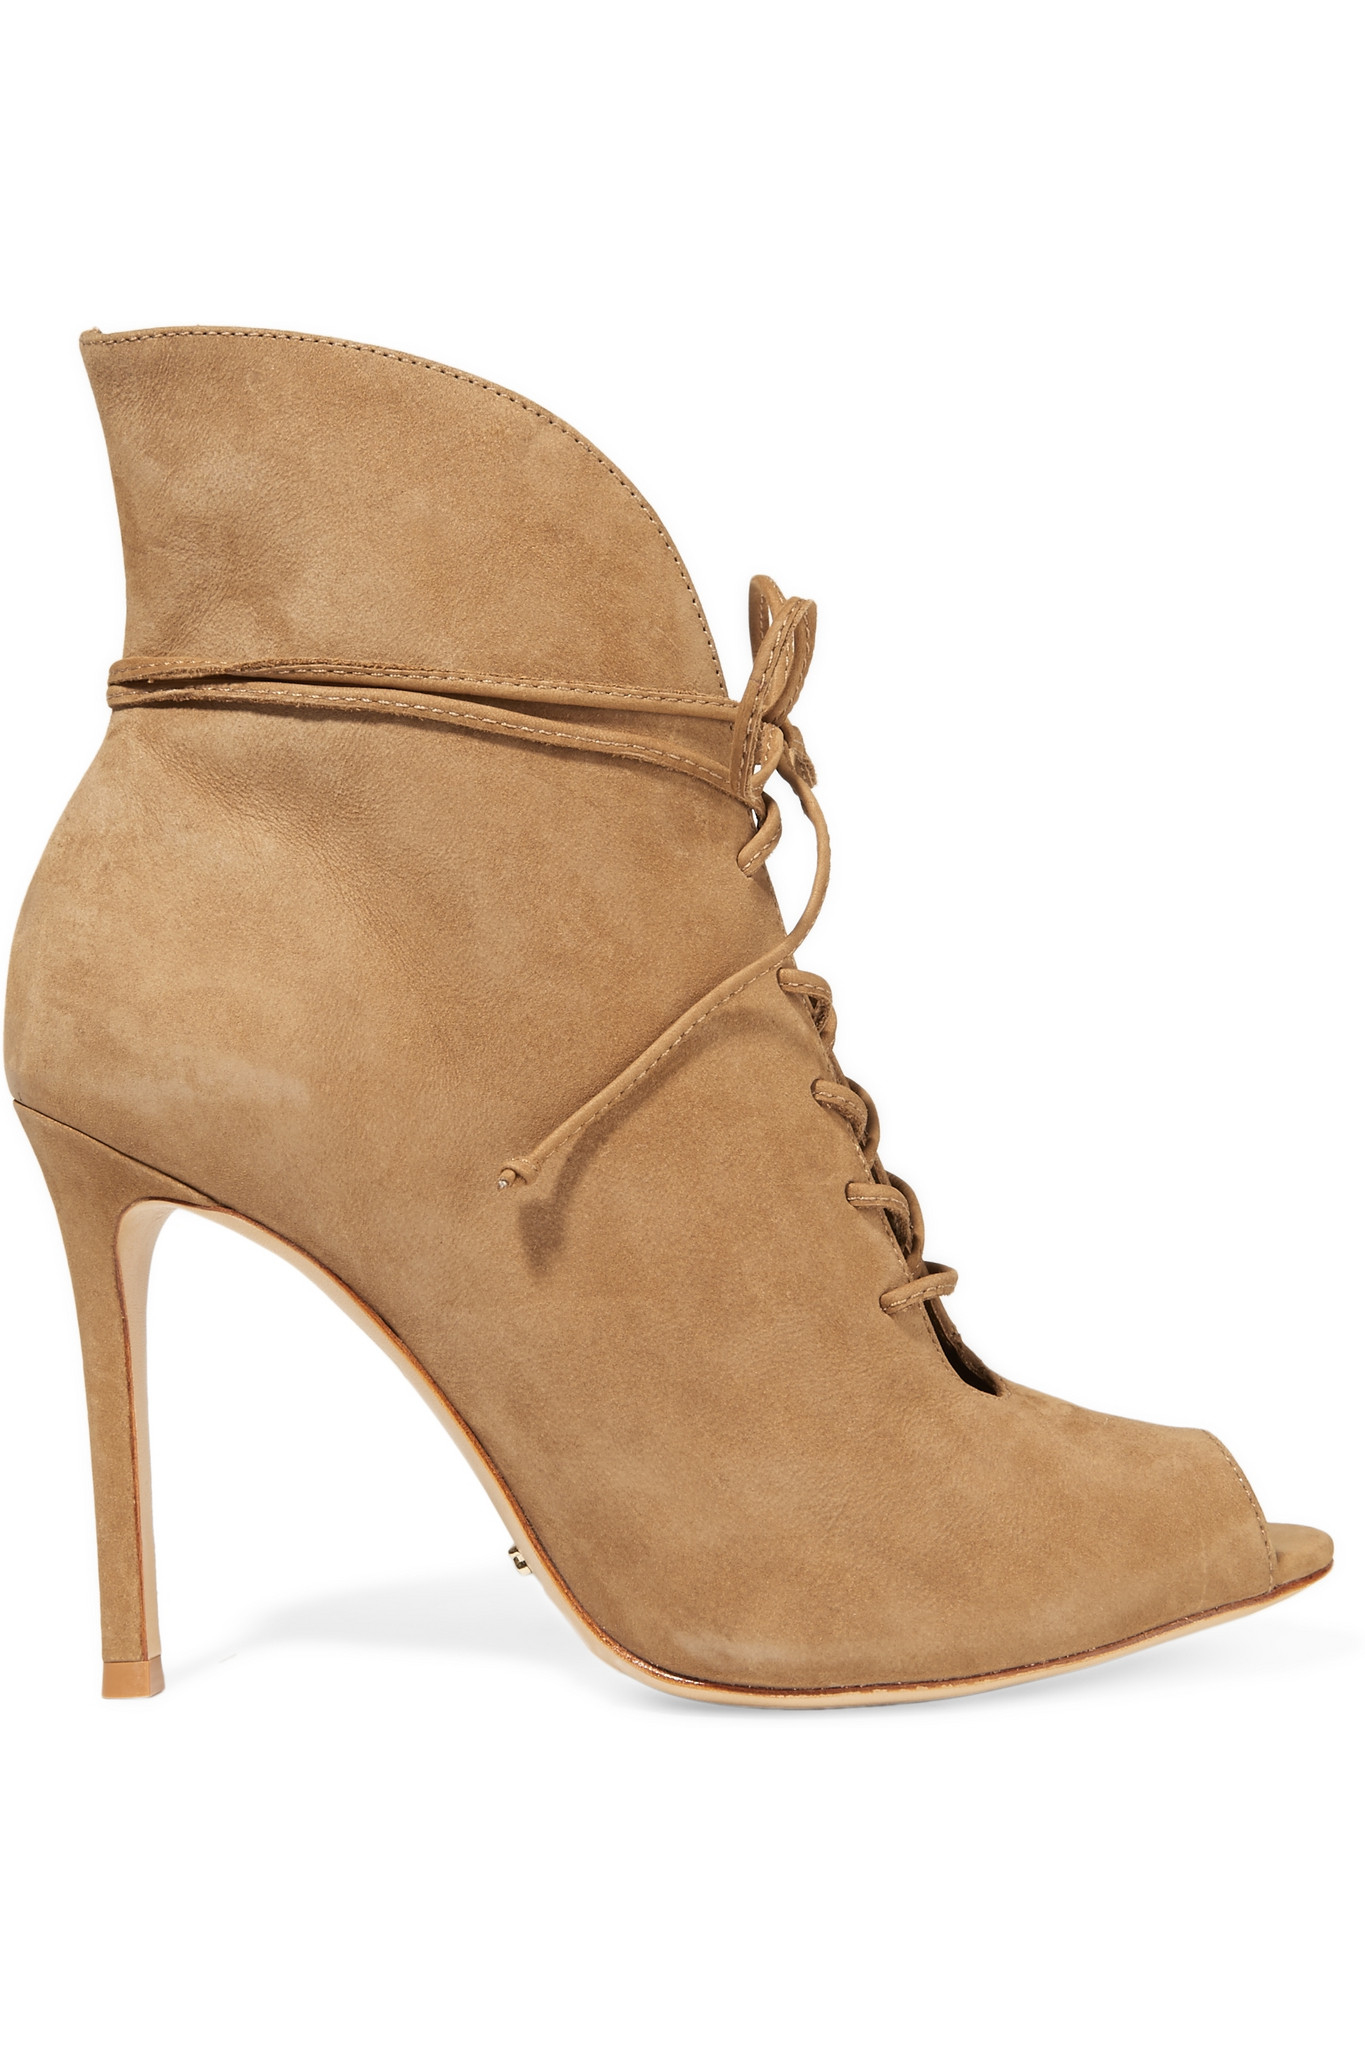 3383837289c7 Lyst - Schutz Kafalin Lace-up Nubuck Ankle Boots in Natural